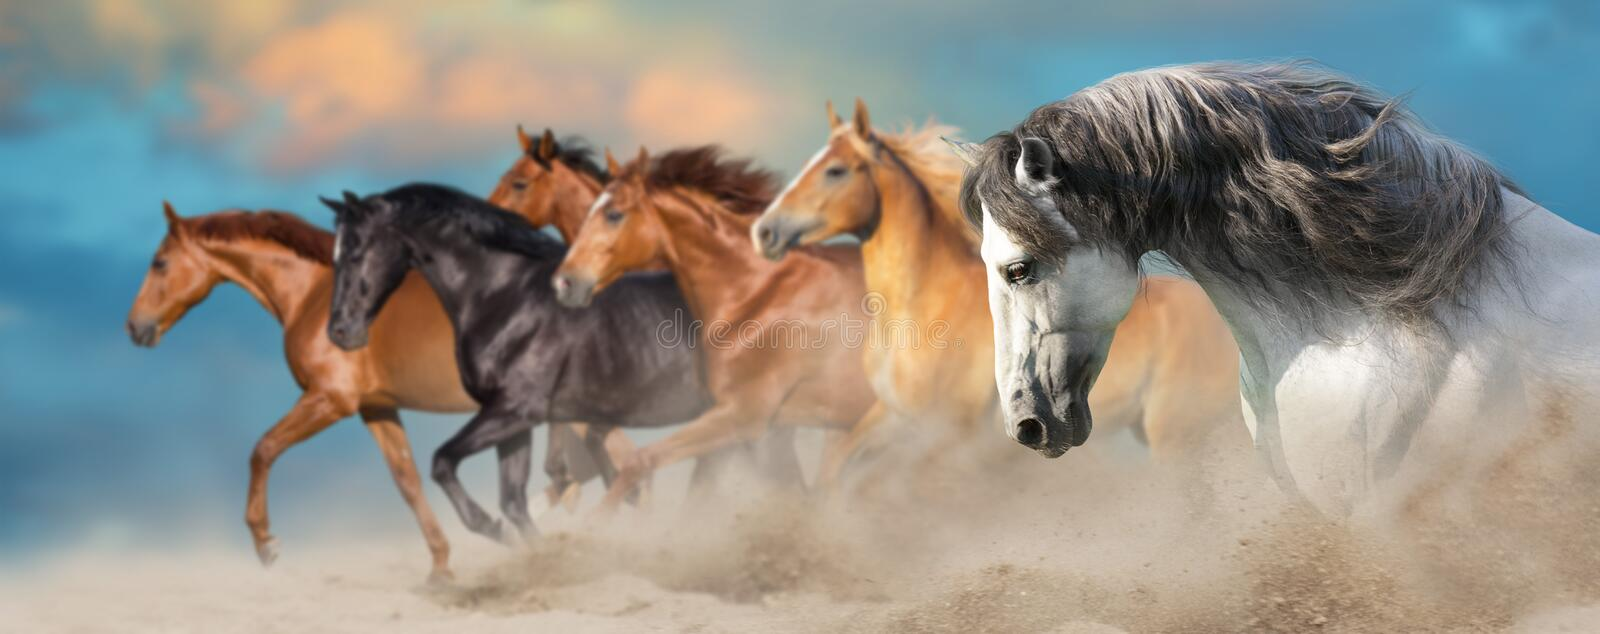 Horses close up portrait stock image